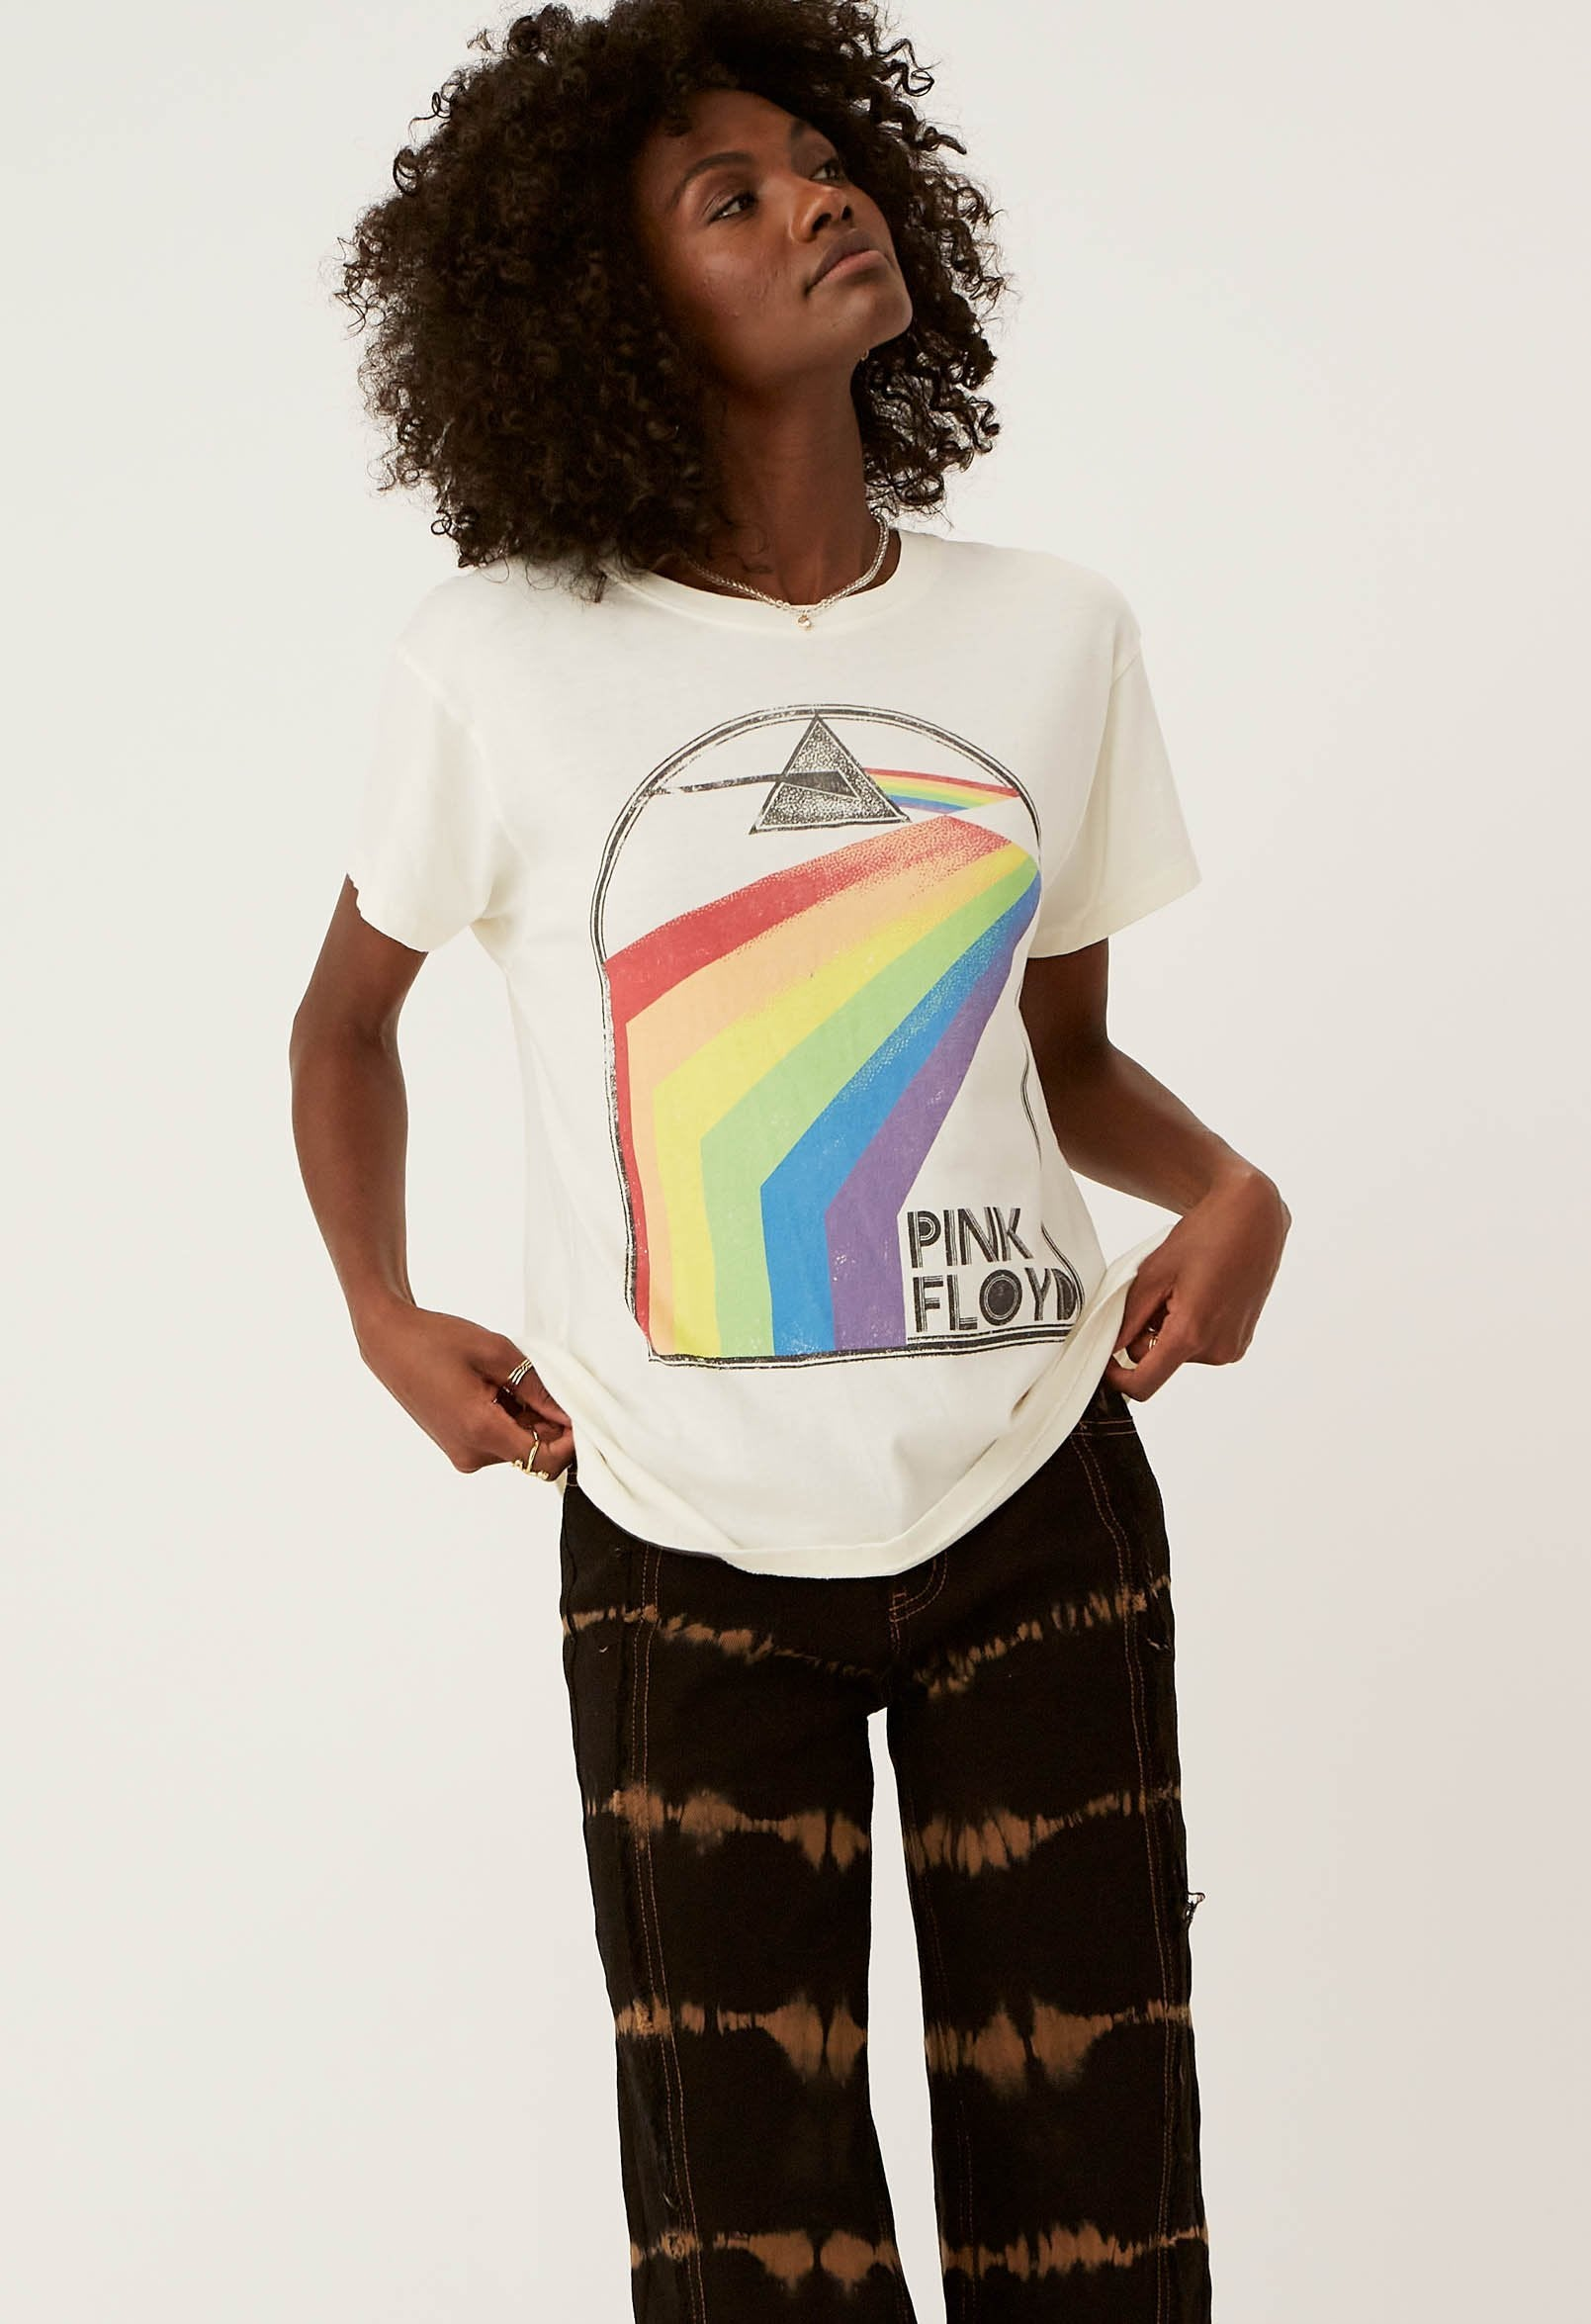 Load image into Gallery viewer, Pink Floyd Retro Rainbow Tour Tee - Stone Vintage | Daydreamer LA - Women's Clothing